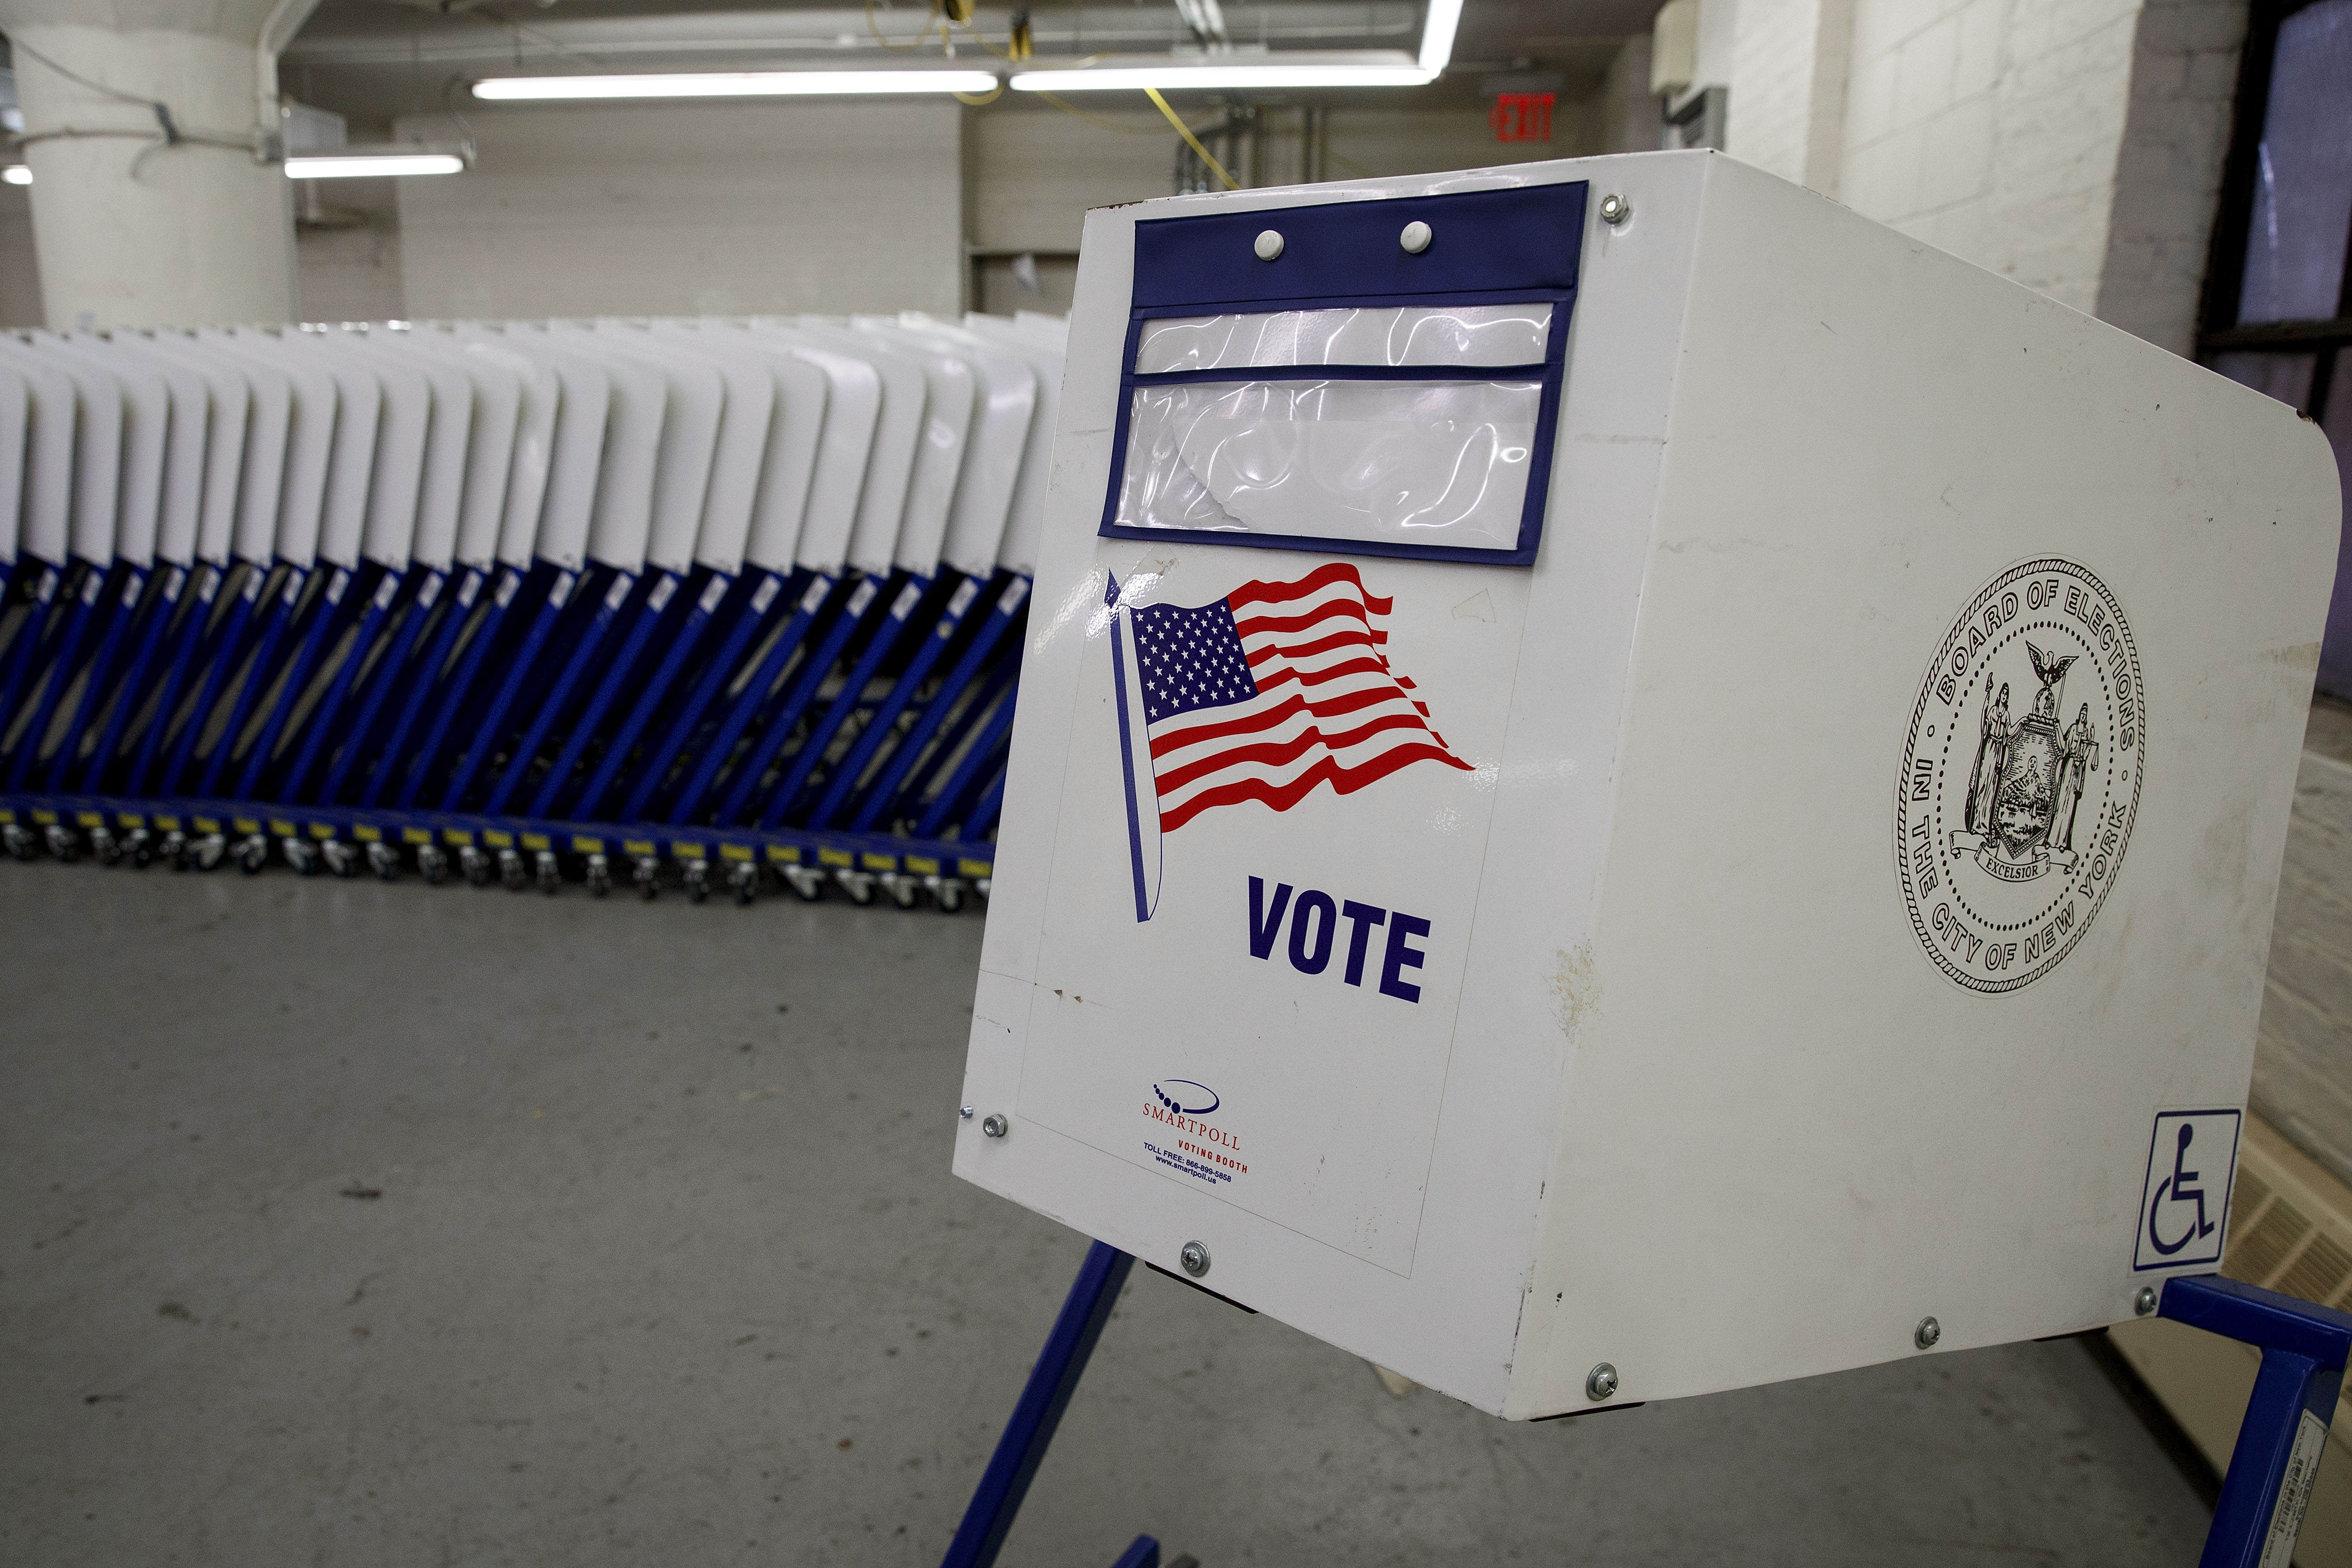 Voting booths sit at a New York City Board of Elections voting machine facility warehouse, November 3, 2016 in the Bronx borough in New York City.